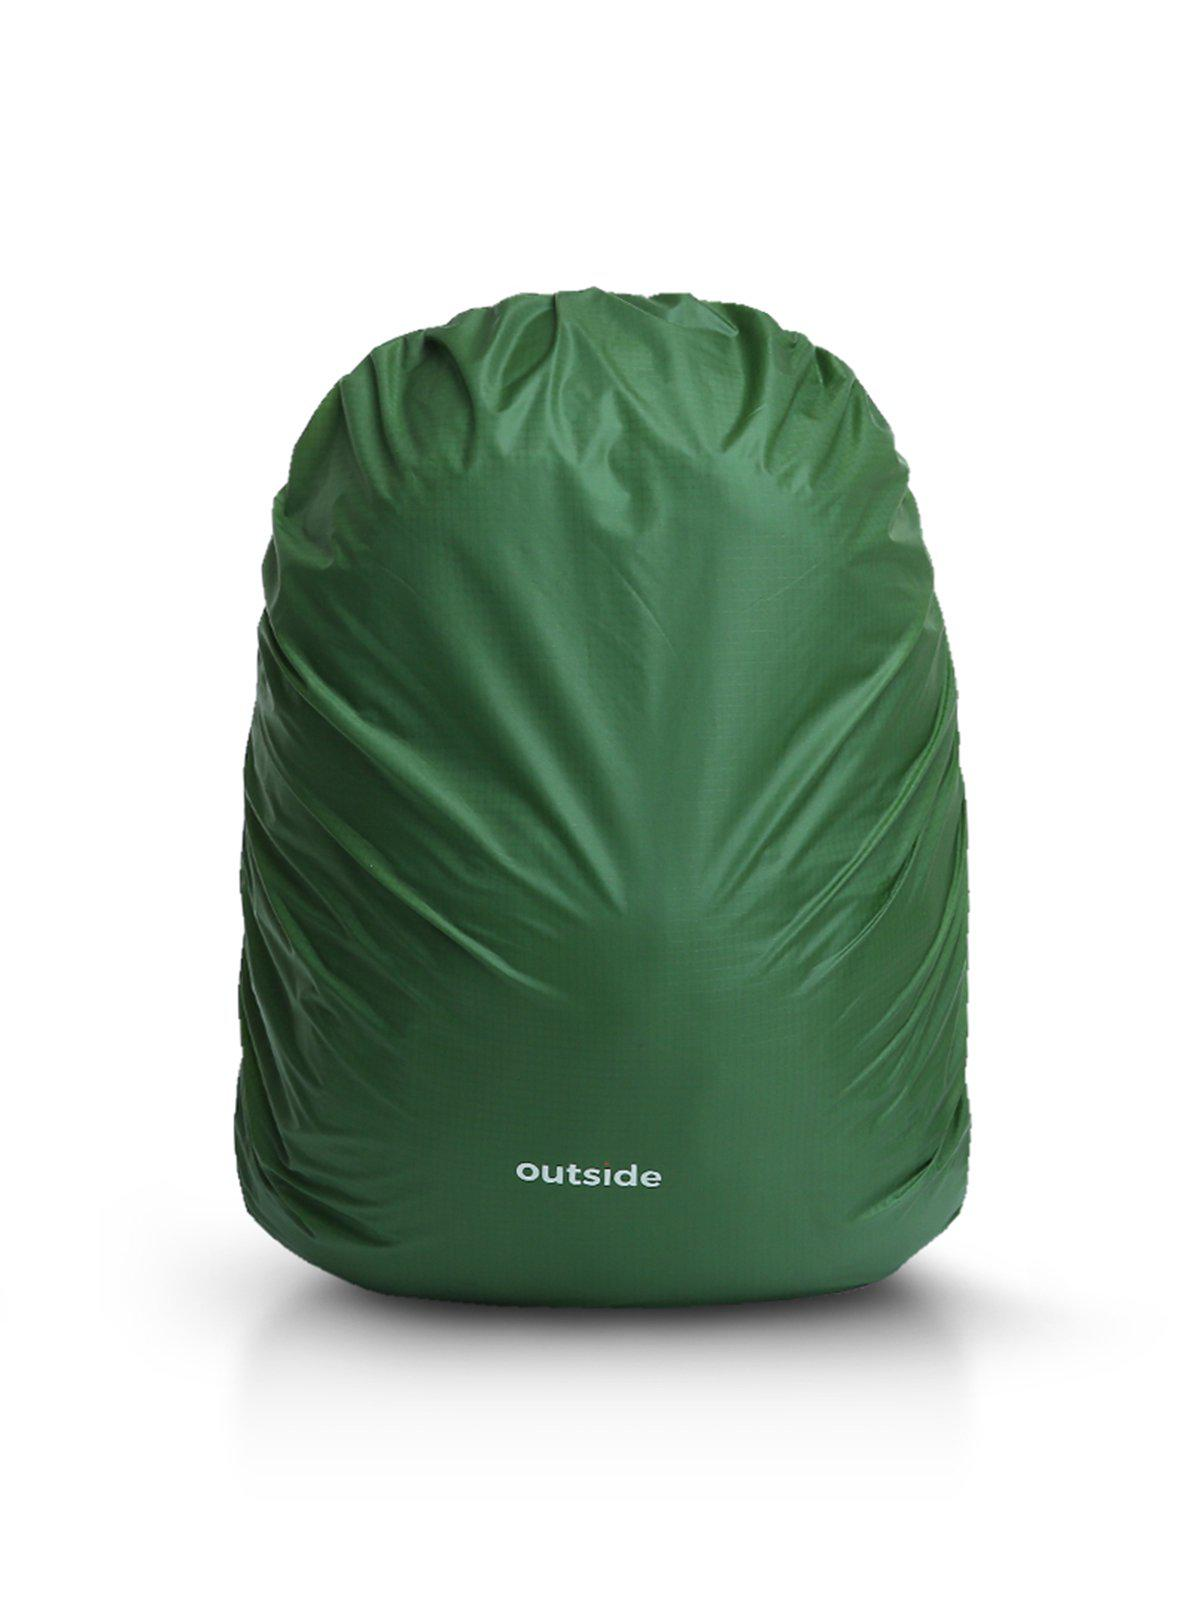 Outside Hilo Backpack Green - MORE by Morello Indonesia